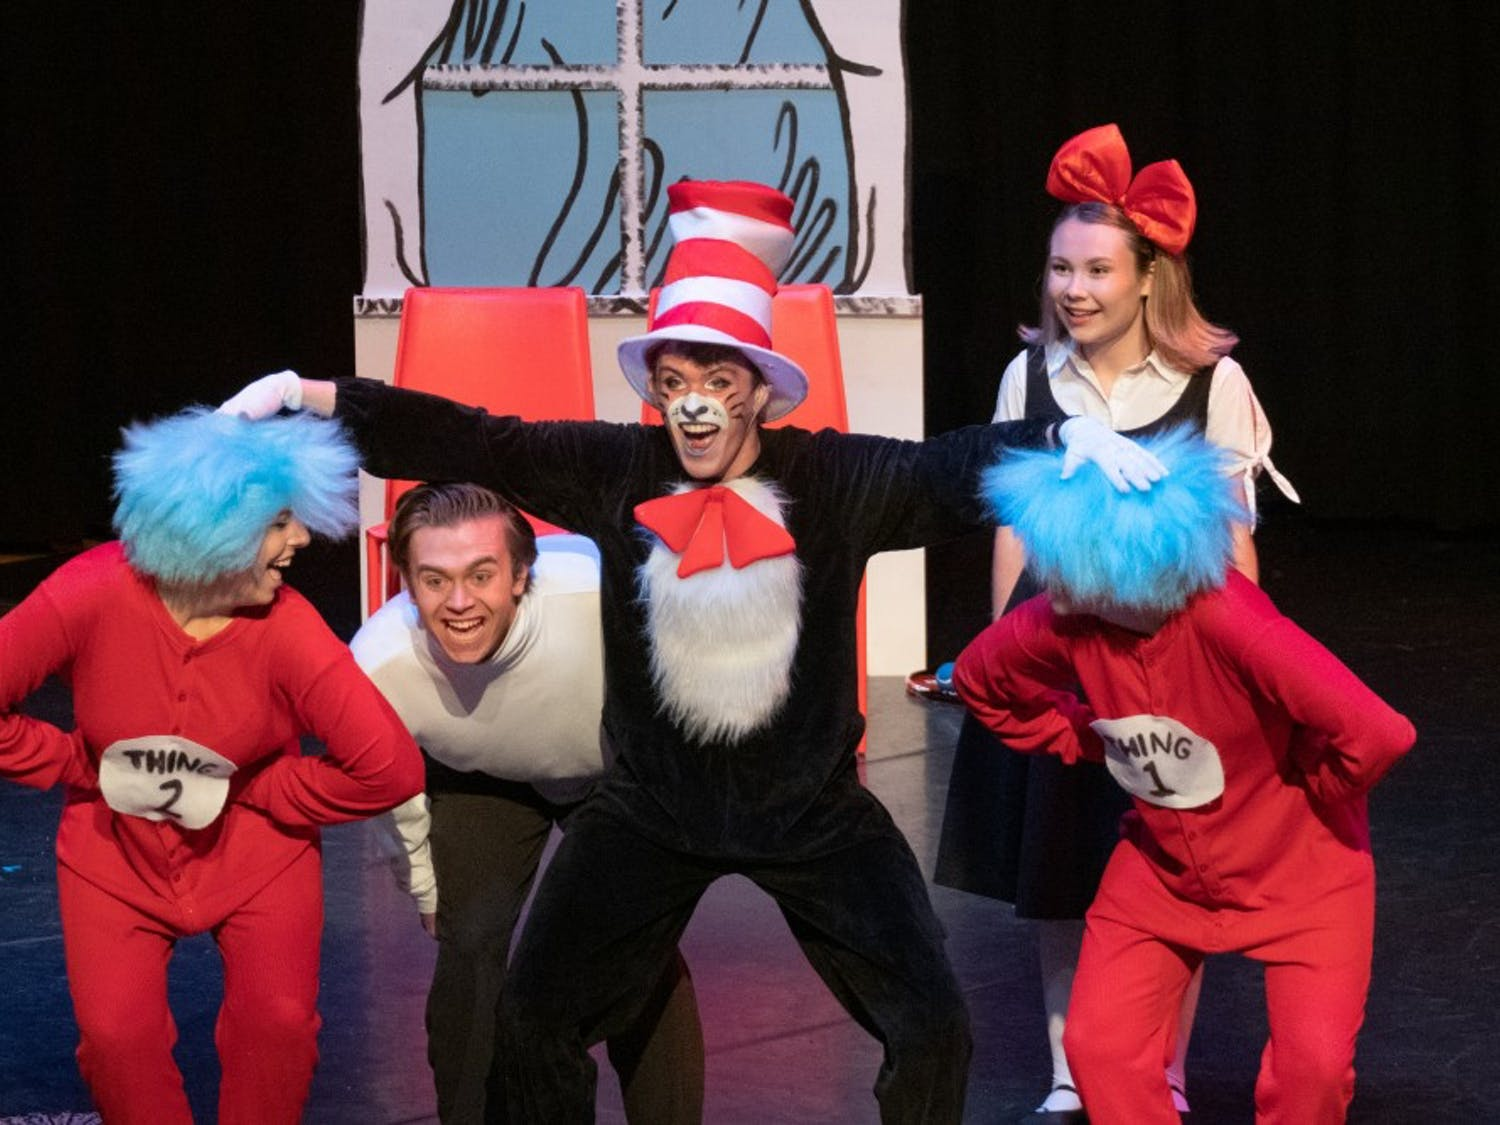 Dr. Seuss characters Sally, Conrad, Thing 1, Thing 2 and The Cat in the Hat on stage.